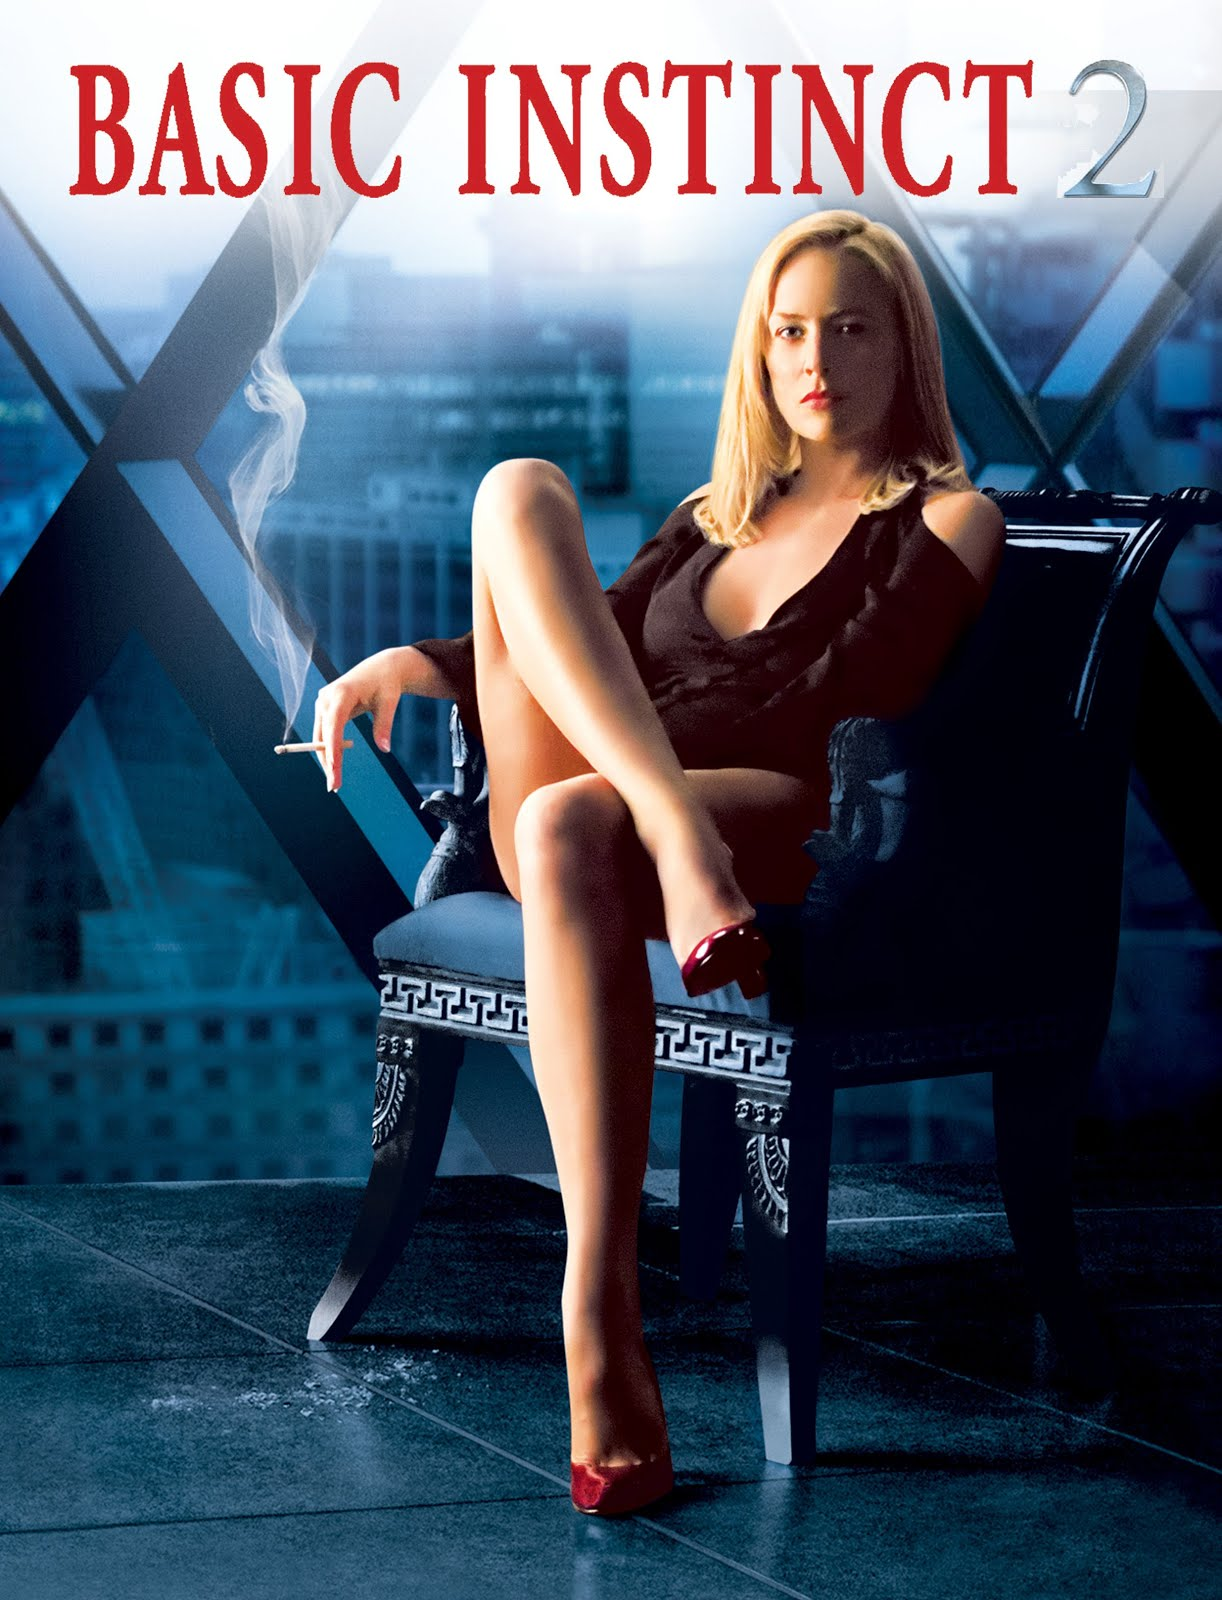 18+ Basic Instinct 2 (2020) UNRATED Hindi Dual Audio 720p BluRay 800MB MKV